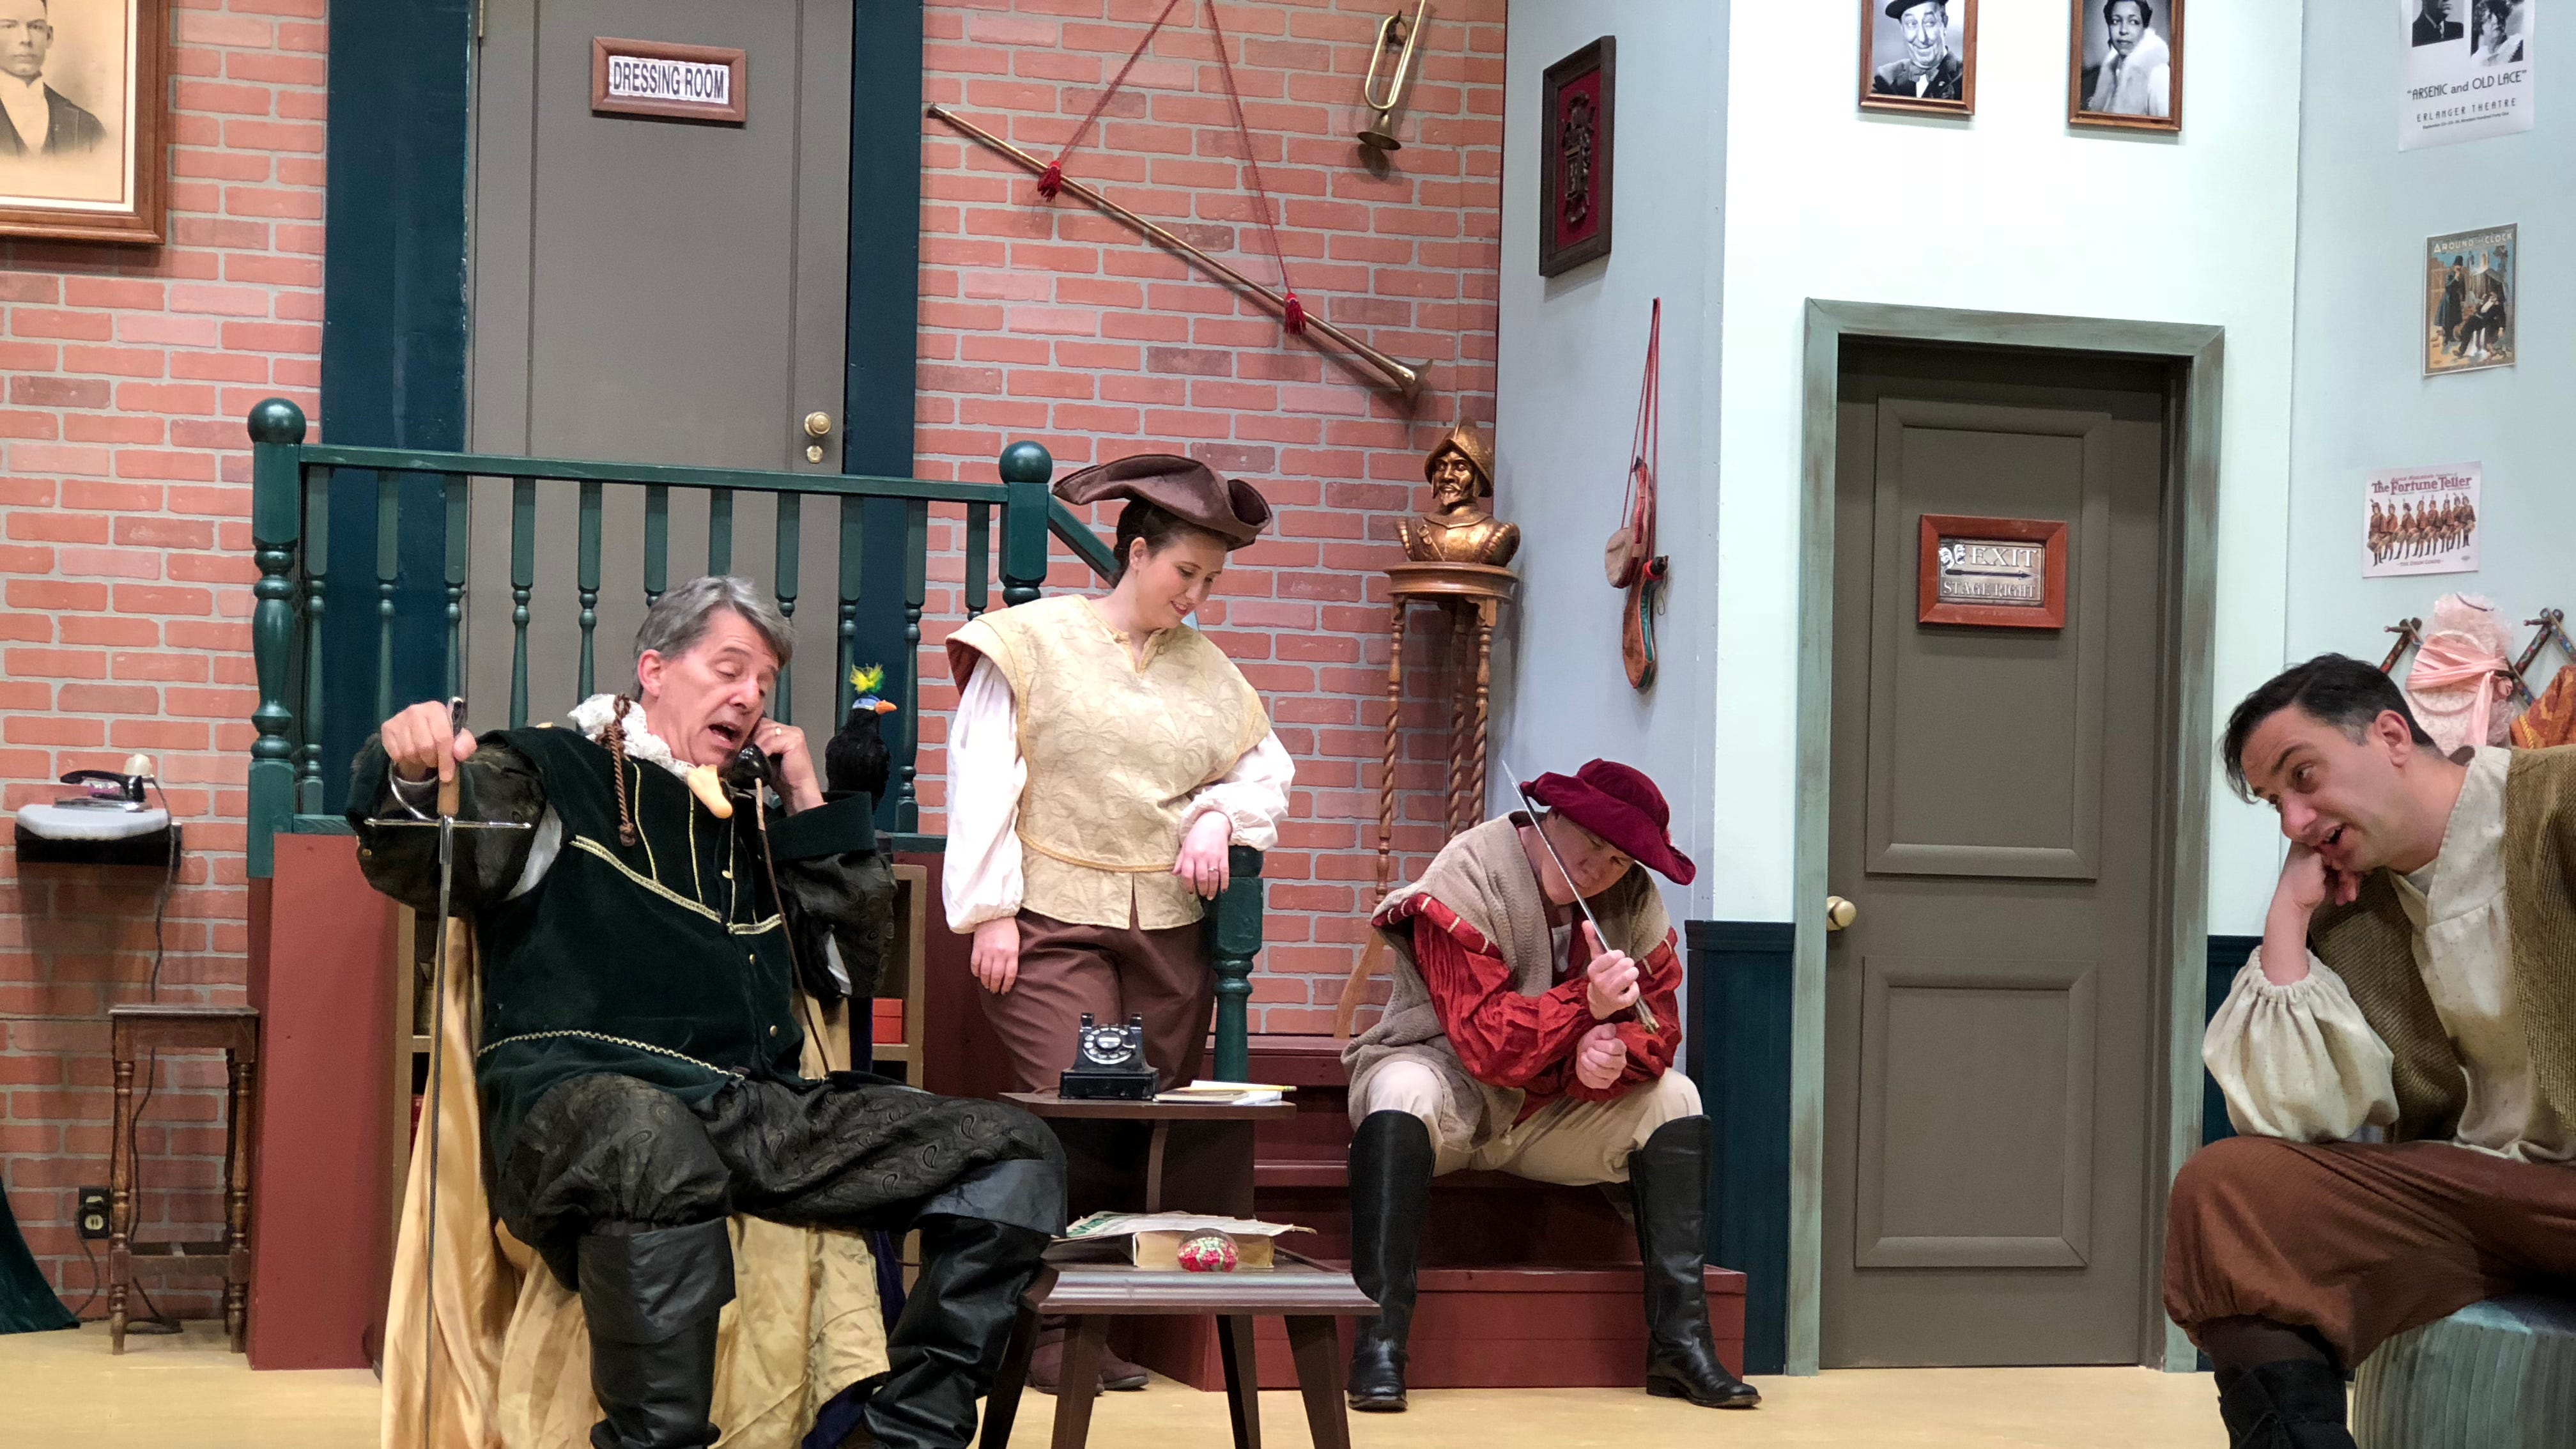 """""""Moon Over Buffalo"""" castmembers (from left) Steven W. Buechler, Cailey O'Leary, Bruce Taylor and Scott Ventrice rehearse a scene."""